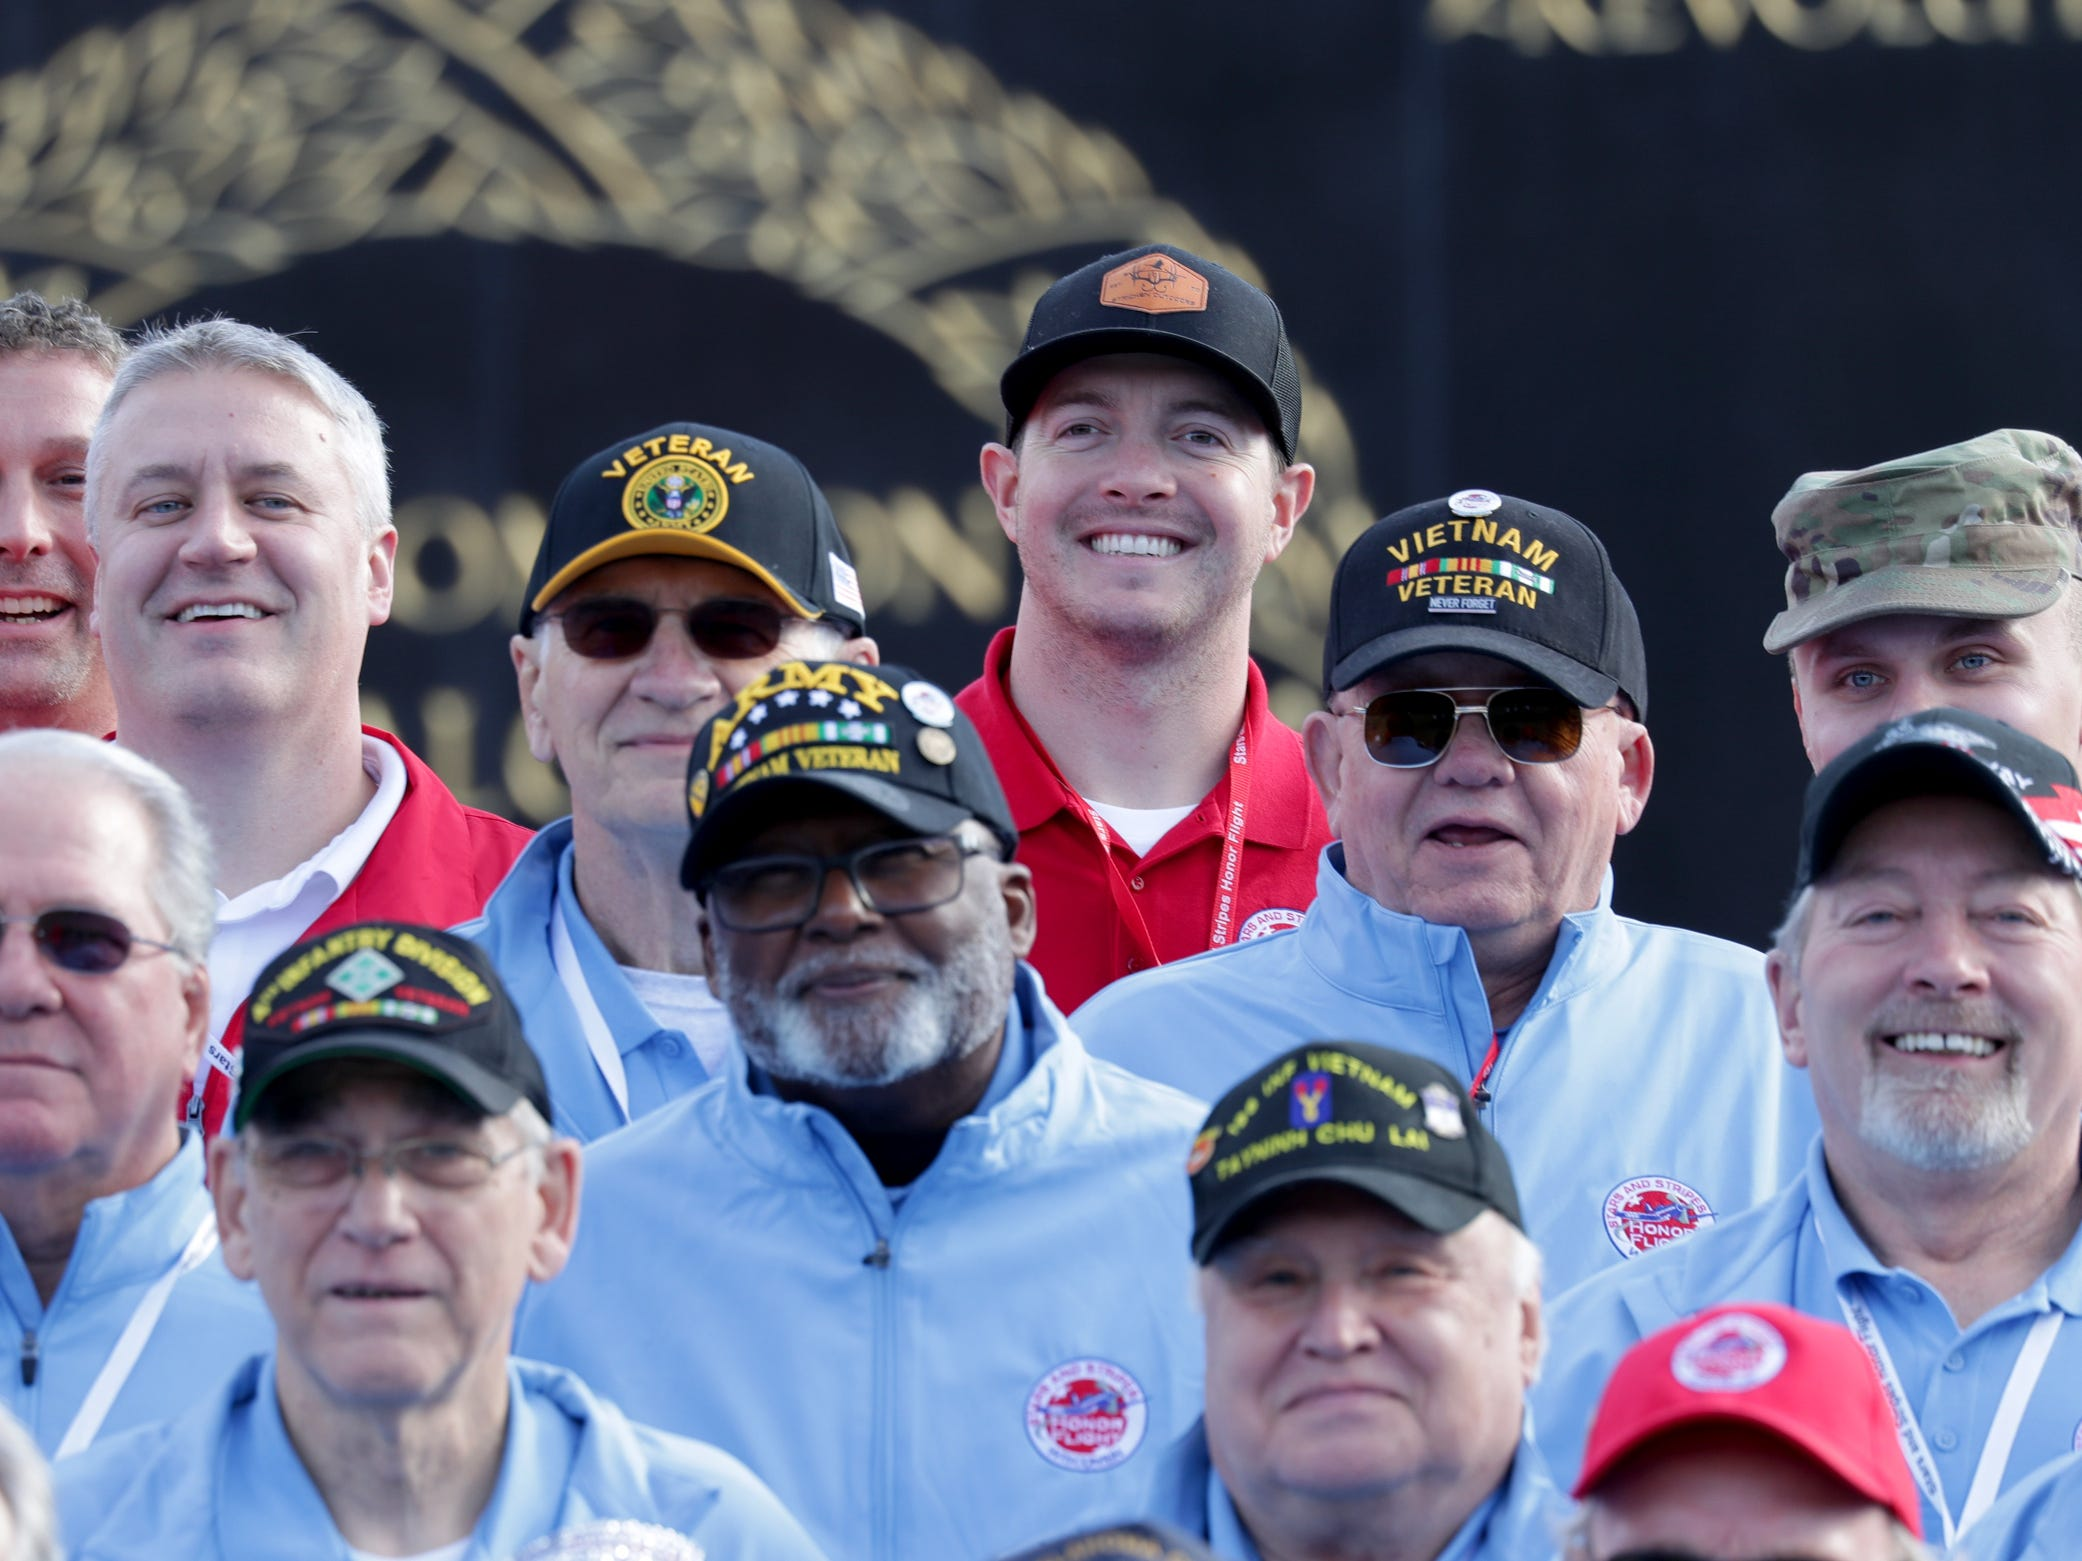 Milwaukee Brewers relief pitcher Corey Knebel (top center), who was a guardian, poses for a photo with Honor Flight veterans at the Marine Corps Memorial.